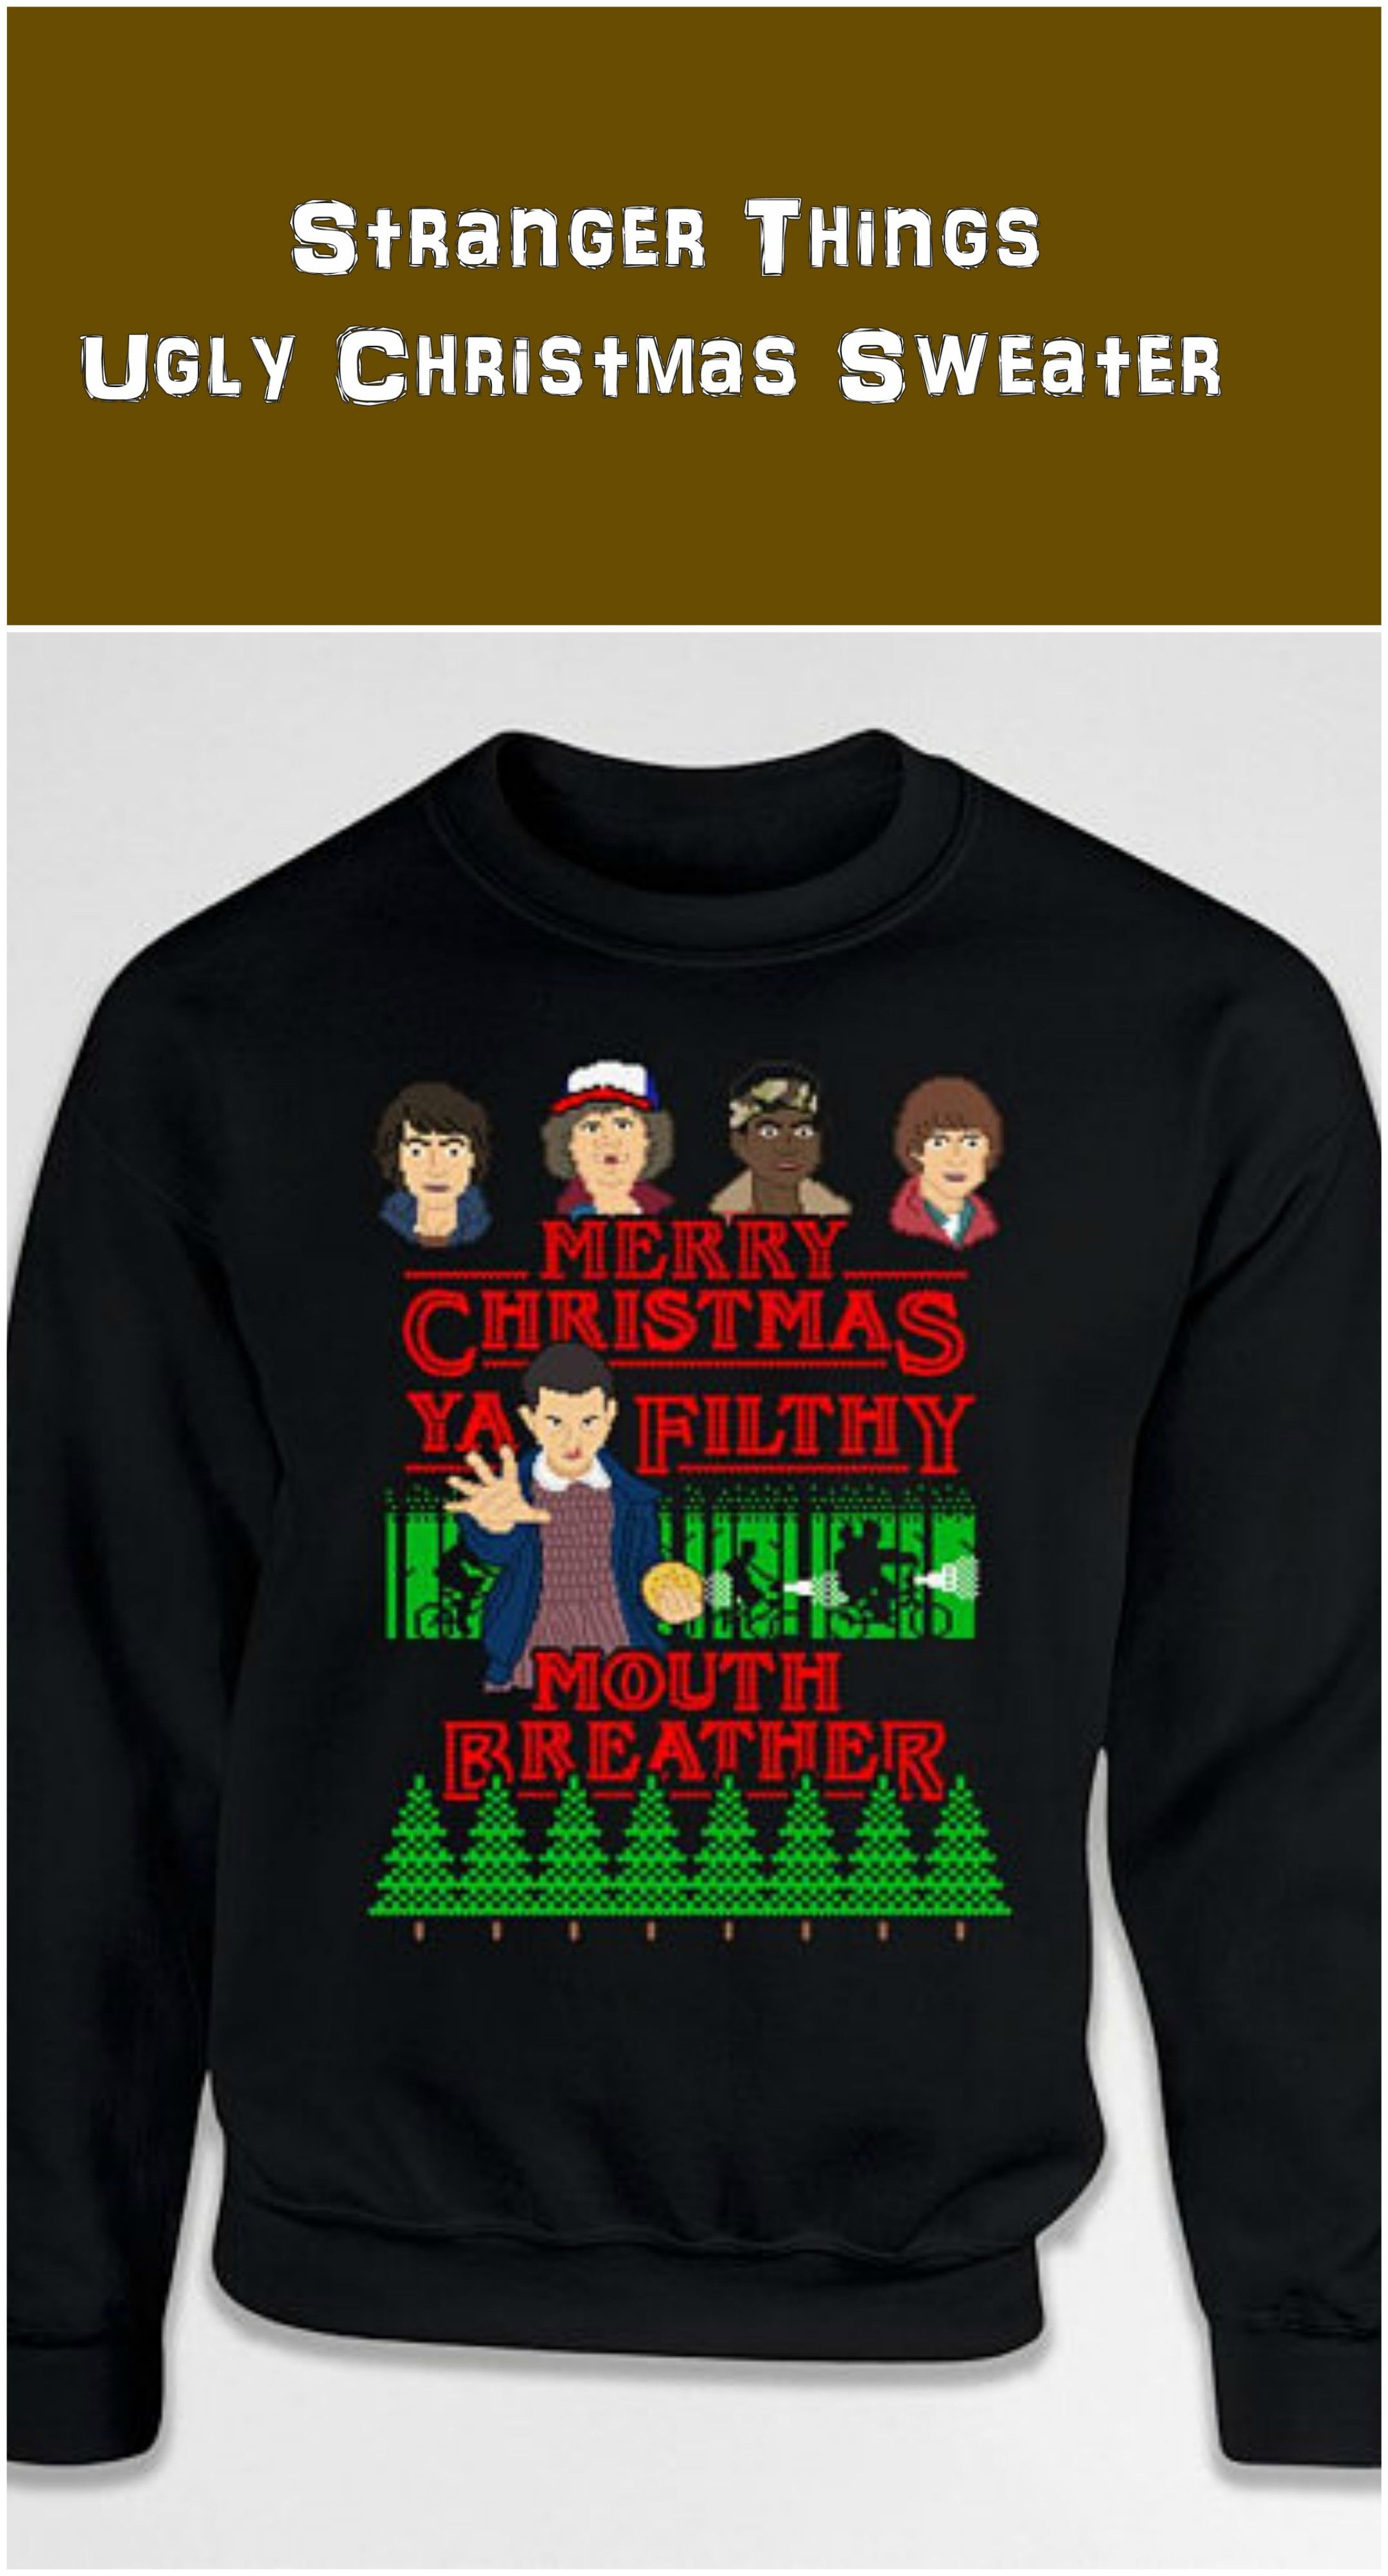 74fd4d8f8 Ugly Christmas Sweater Gifts For Stranger Things Fans Holiday Jumper Xmas  Pullover Christmas Present Hoodie Crewneck Sweatshirt affliate